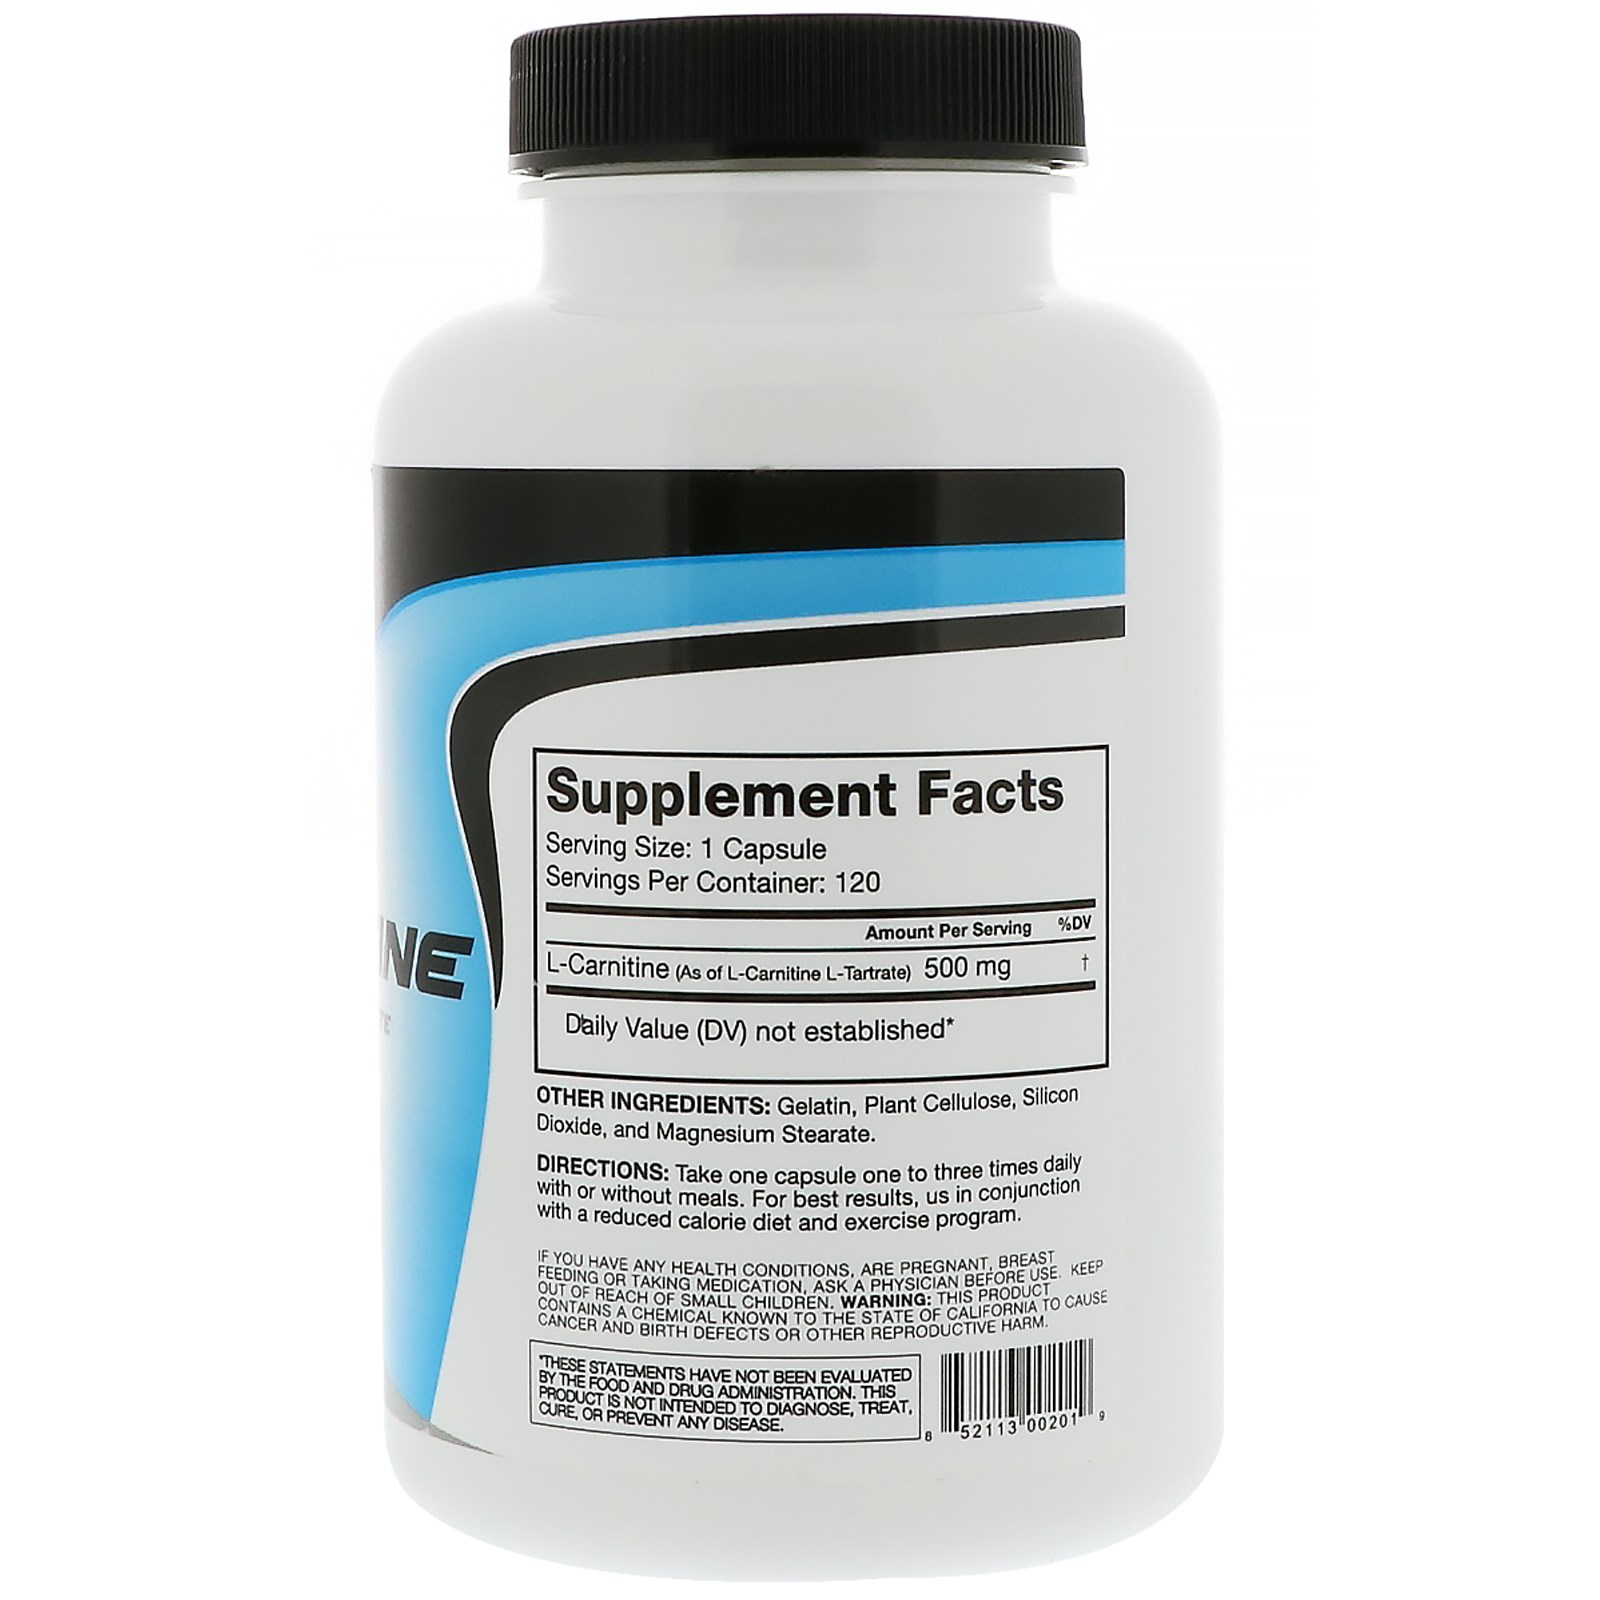 RSP Nutrition L-Carnitine, 120 capsules Unflavoured(Expiry May-2020) supplements facts